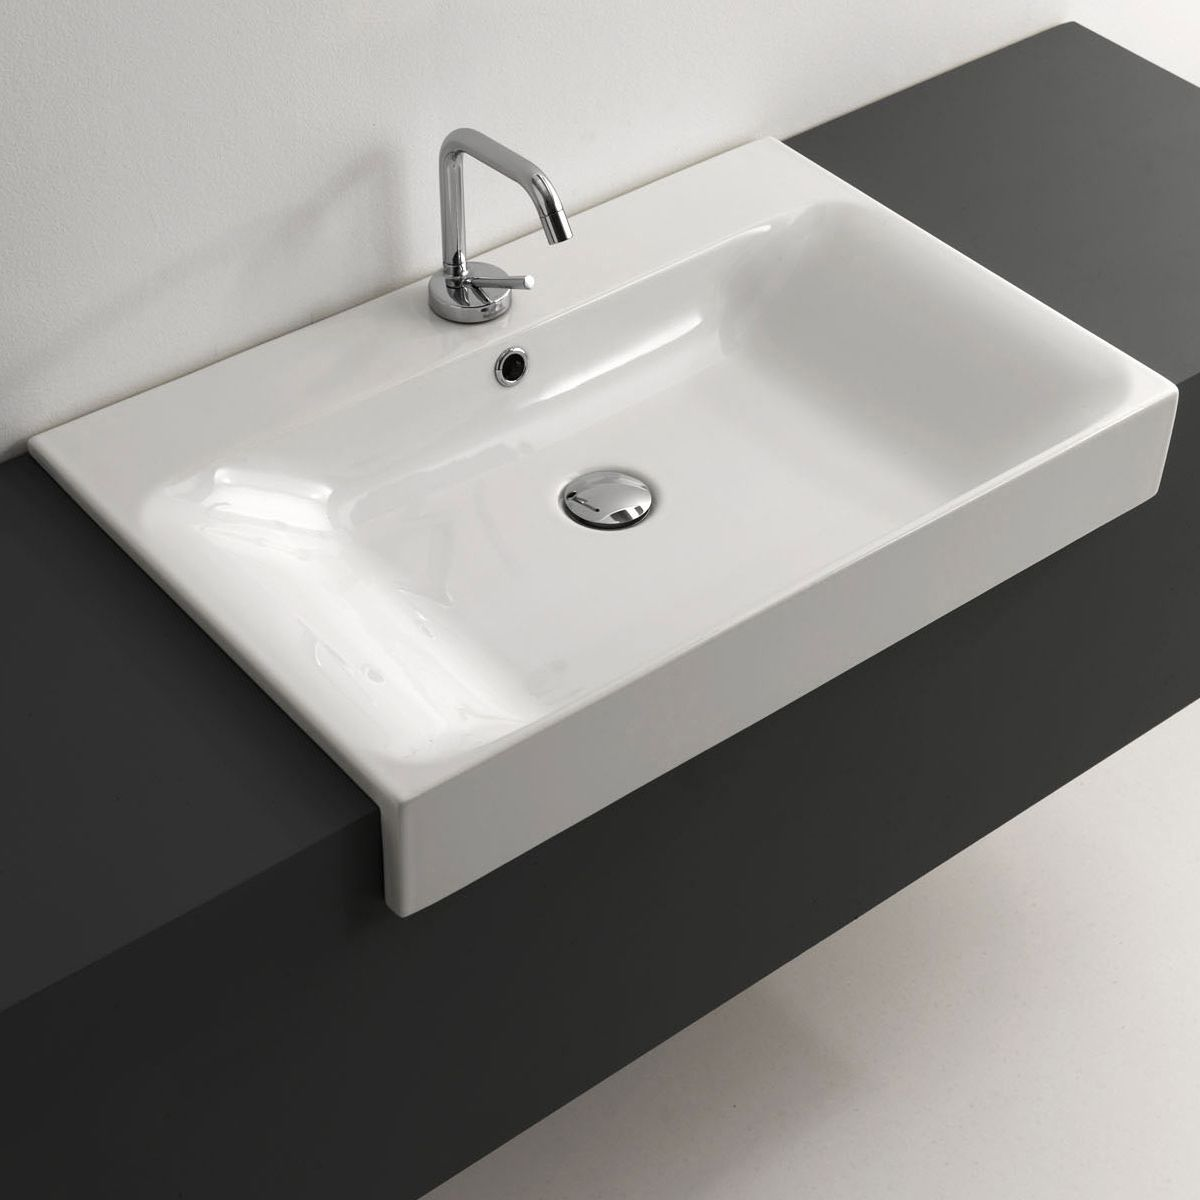 Ws Bath Collections Kerasam Ceramic 27 6 In X 17 7 In White Semi Recessed Bathroom Sink With Images Bathroom Sink Drop In Bathroom Sinks Sink